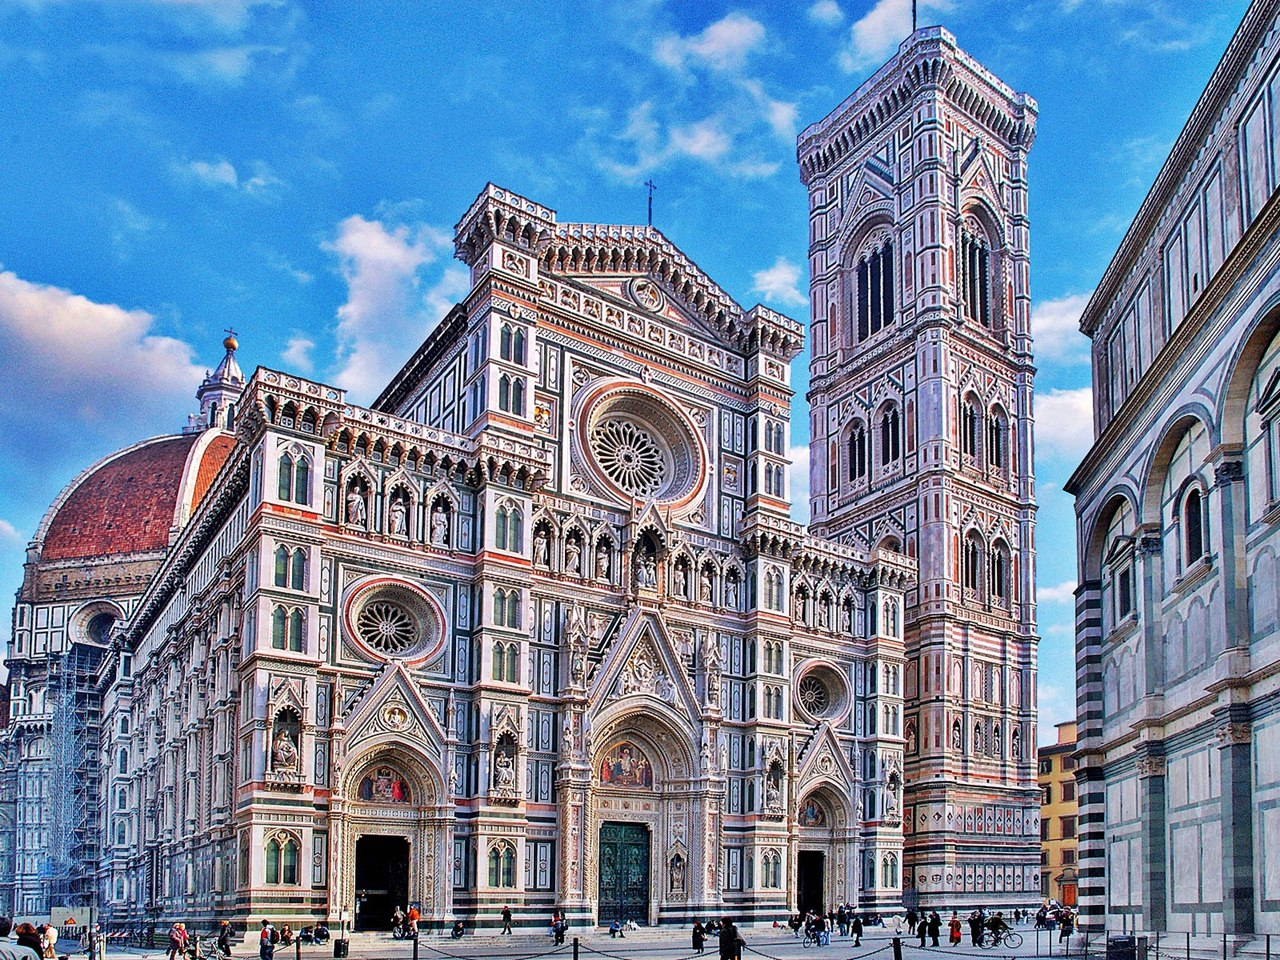 Florence Cathedral (taken from Wikipedia)